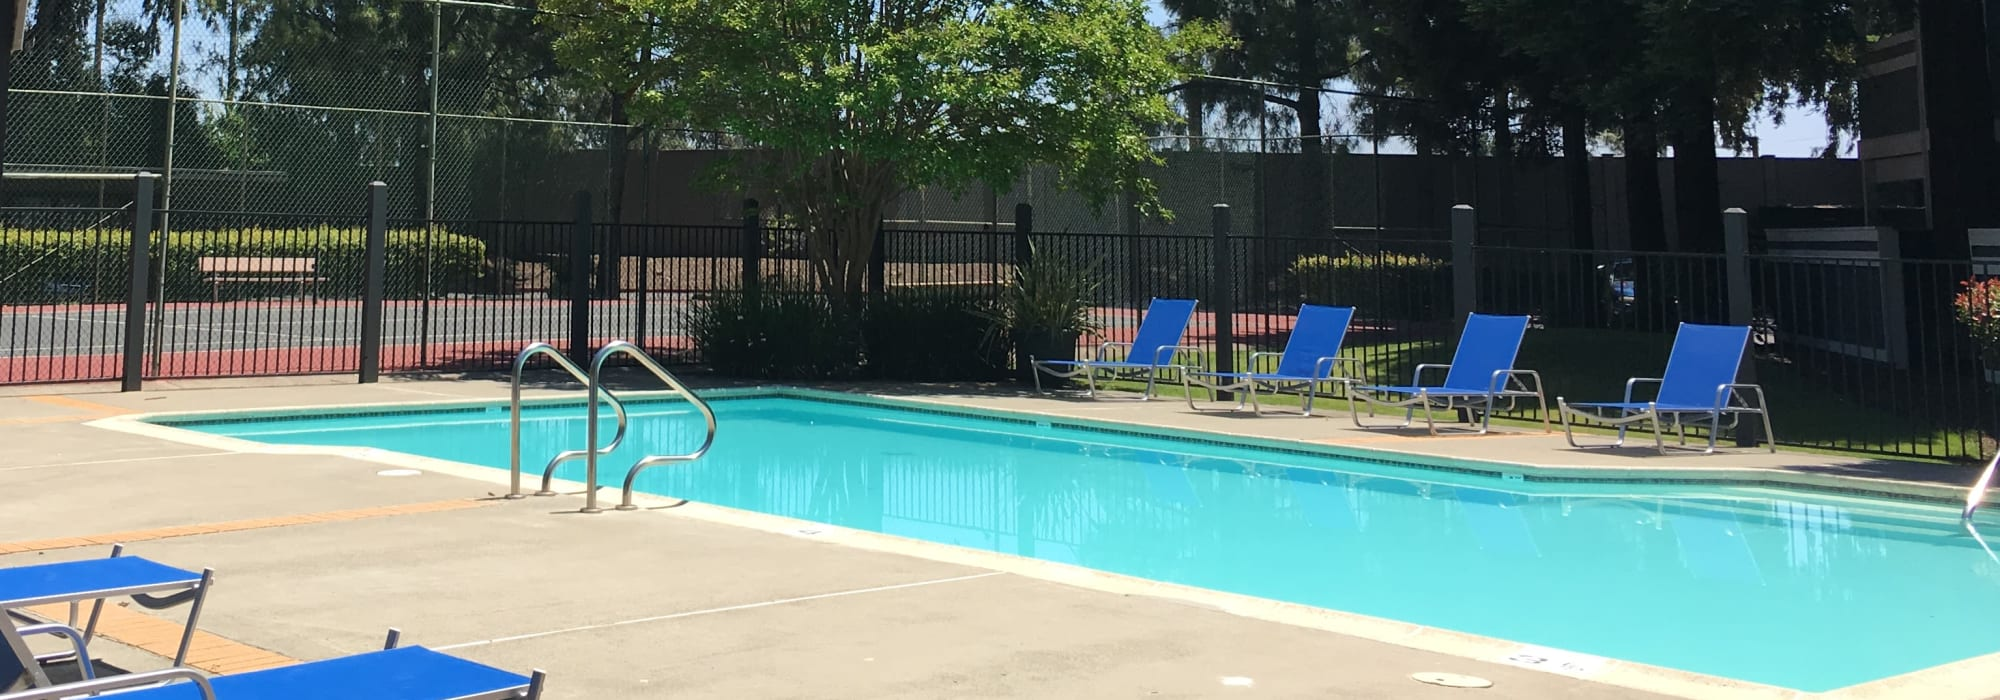 Pet friendly living at Avery Park Apartments in Fairfield, California